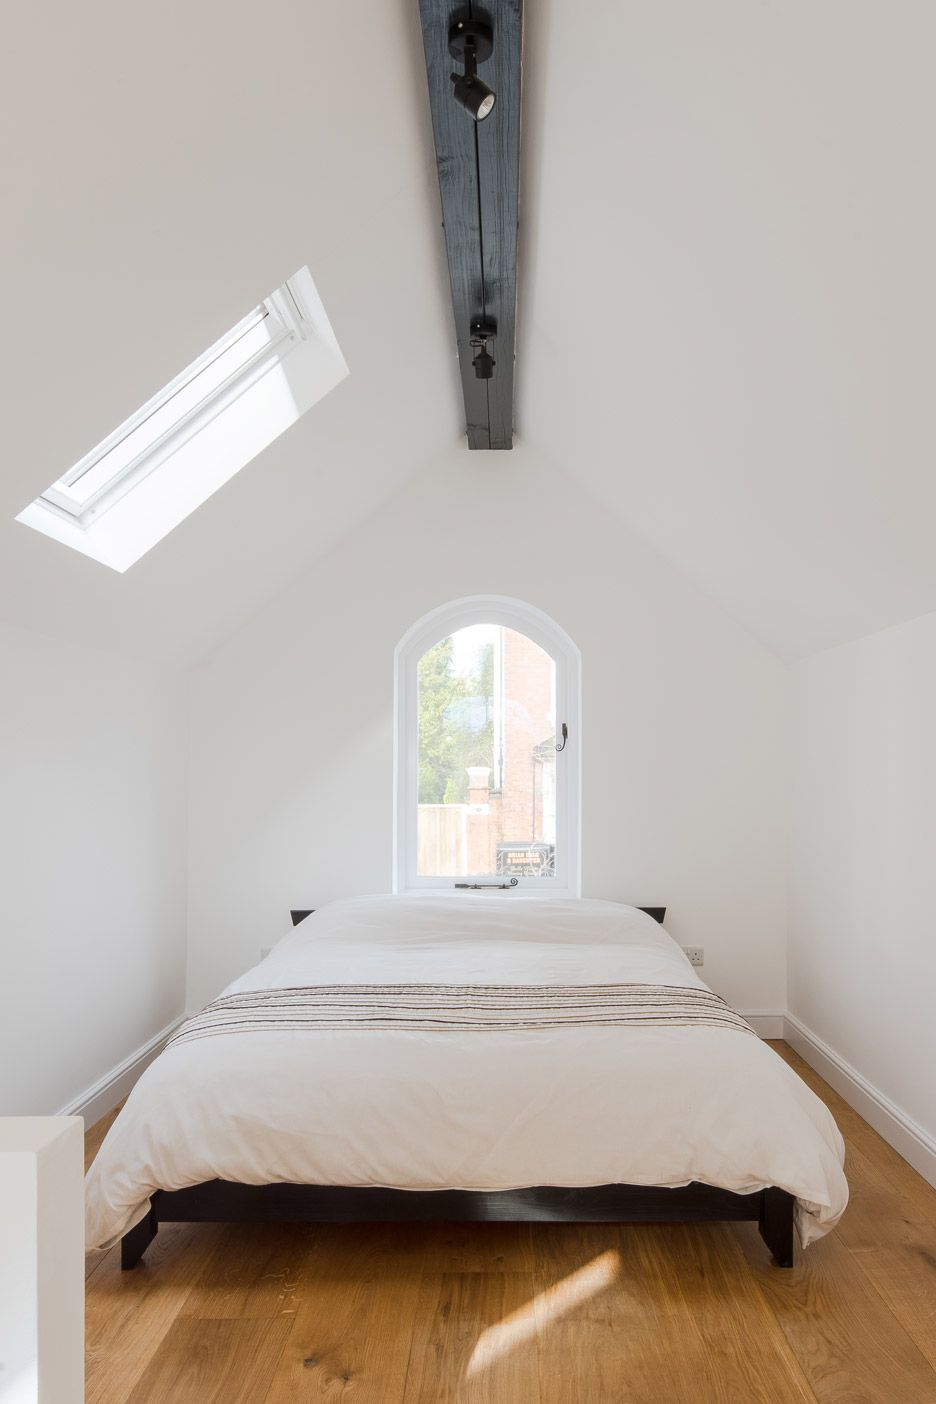 writers-coach-house-intervention-architecture-studio-renovation-moseley-birmingham-england_dezeen_936_6